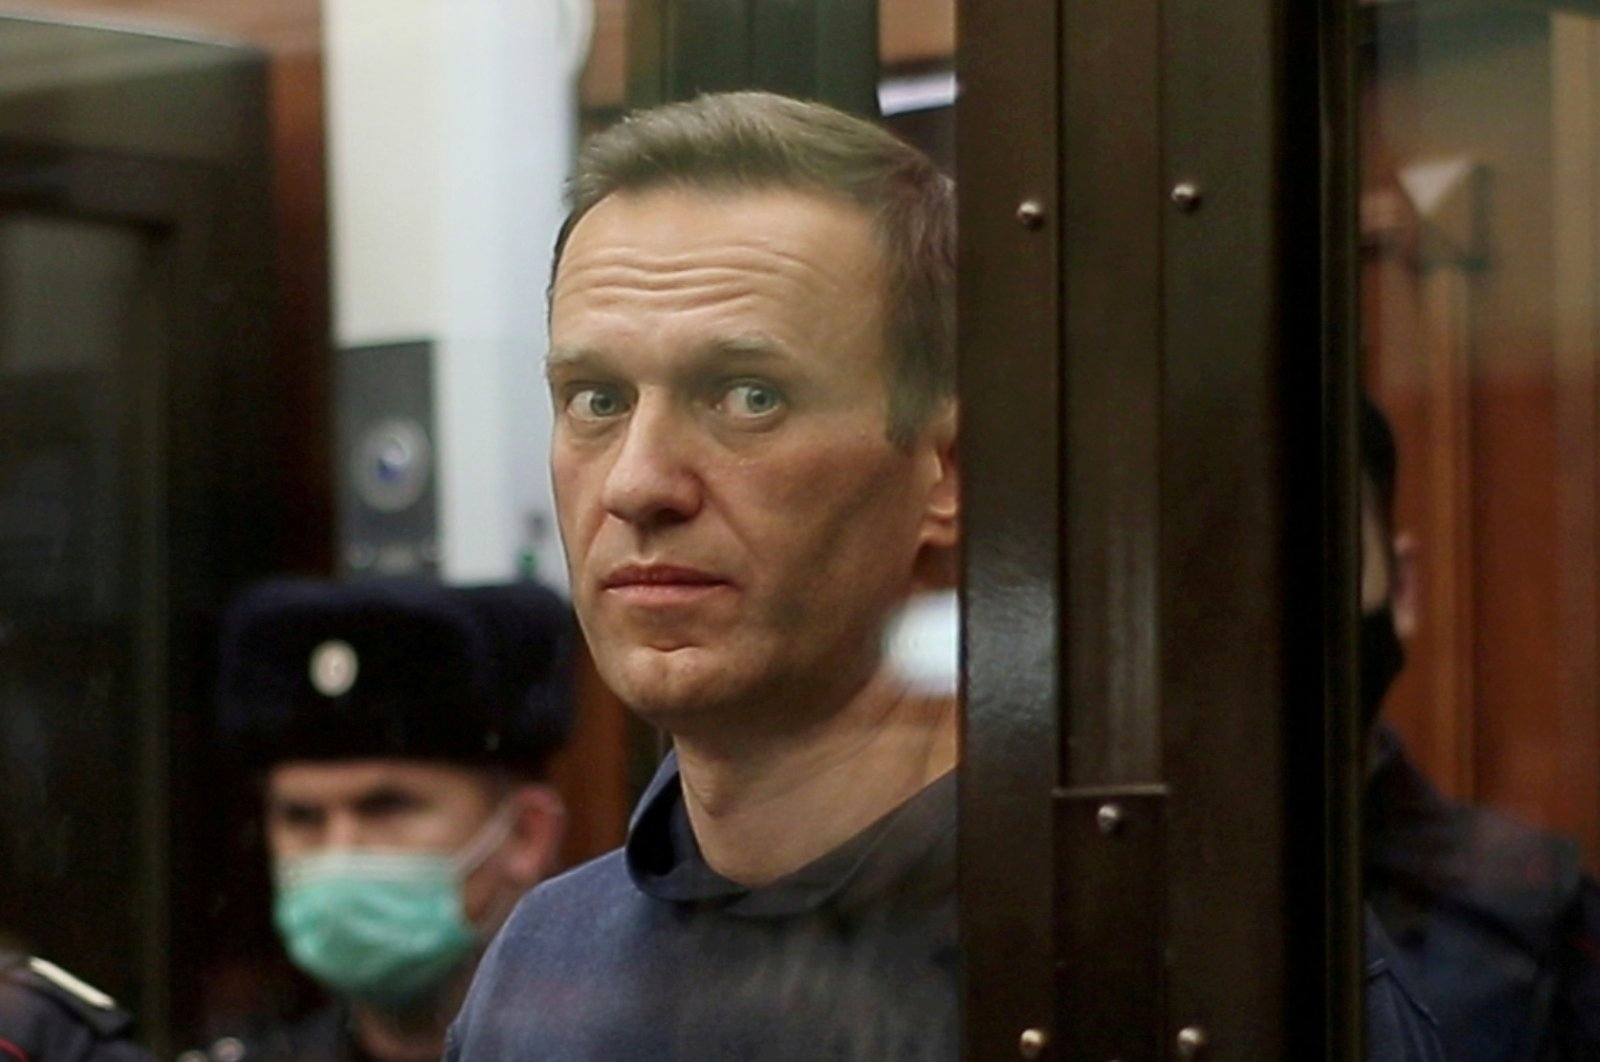 Russian opposition leader Alexei Navalny inside a defendant dock during the announcement of a court verdict in Moscow, Russia, Feb. 2, 2021. (Reuters Photo)